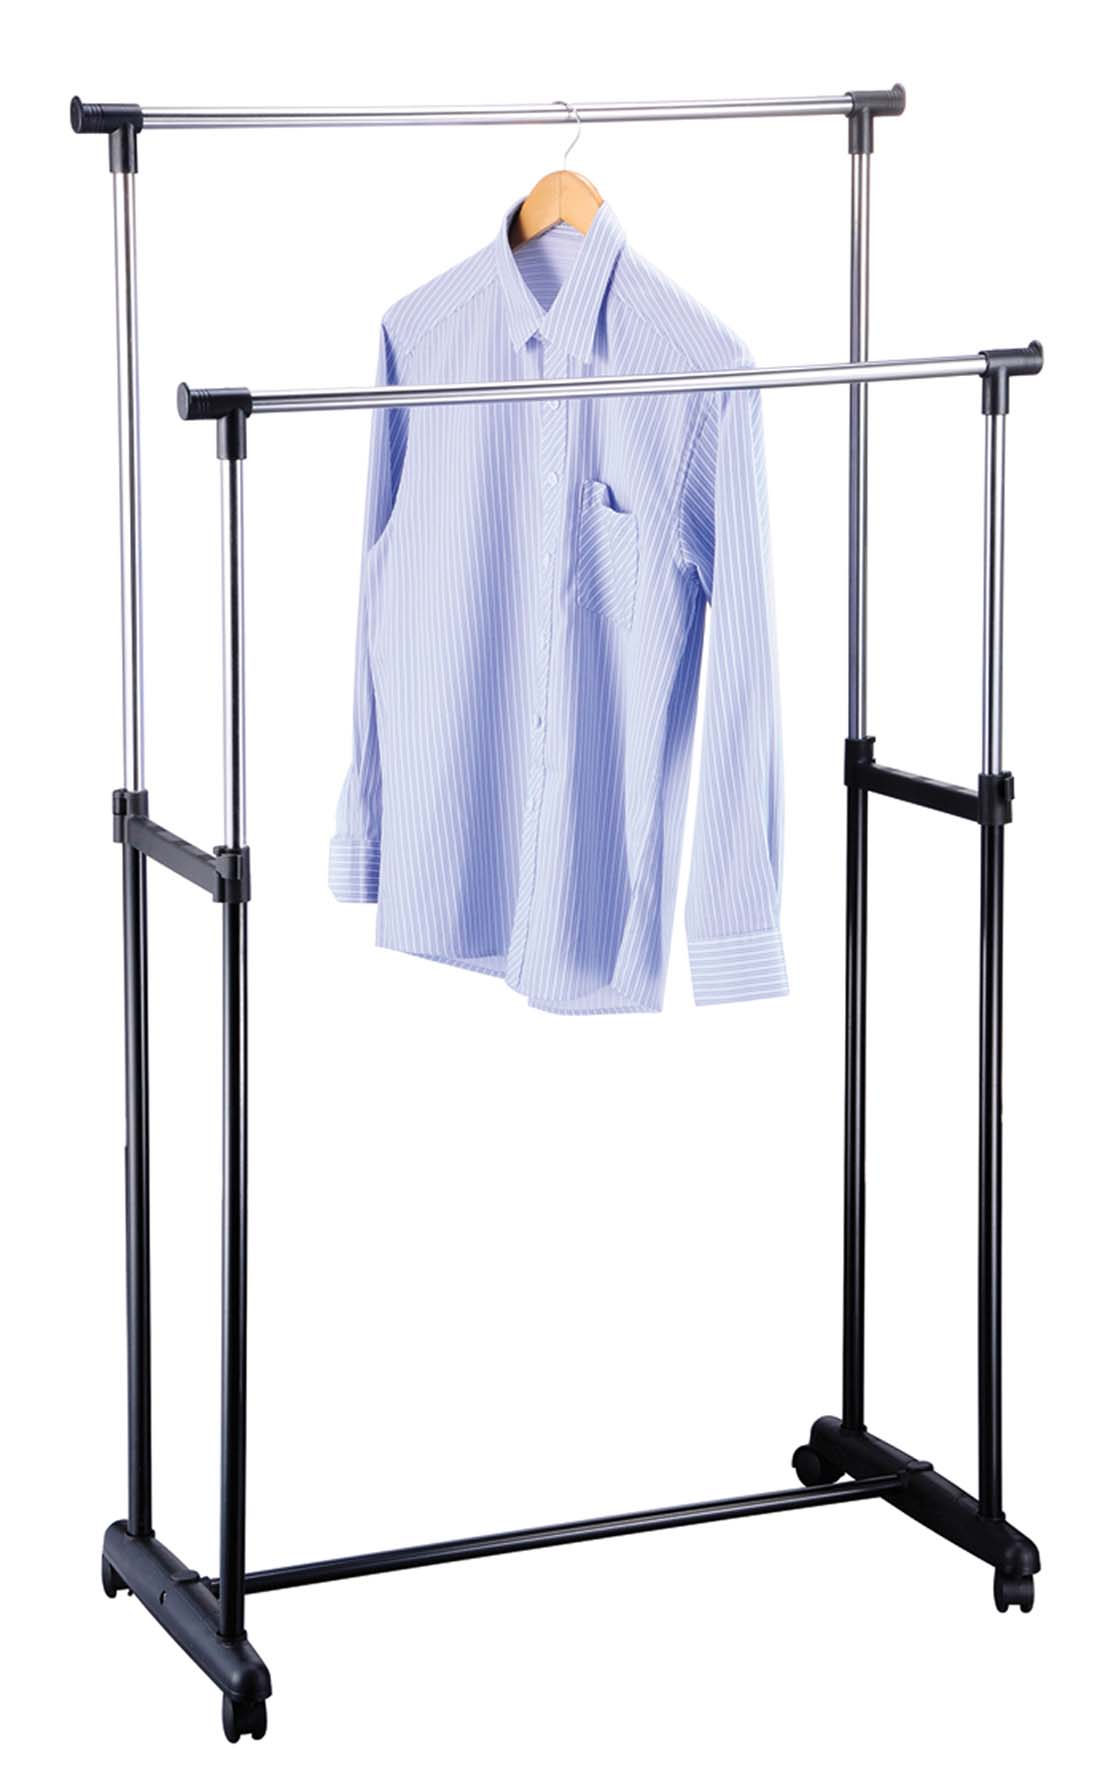 View CLOTHING RACK 33X17X63 INCHES DOUBLE POLE ADJUSTABLE